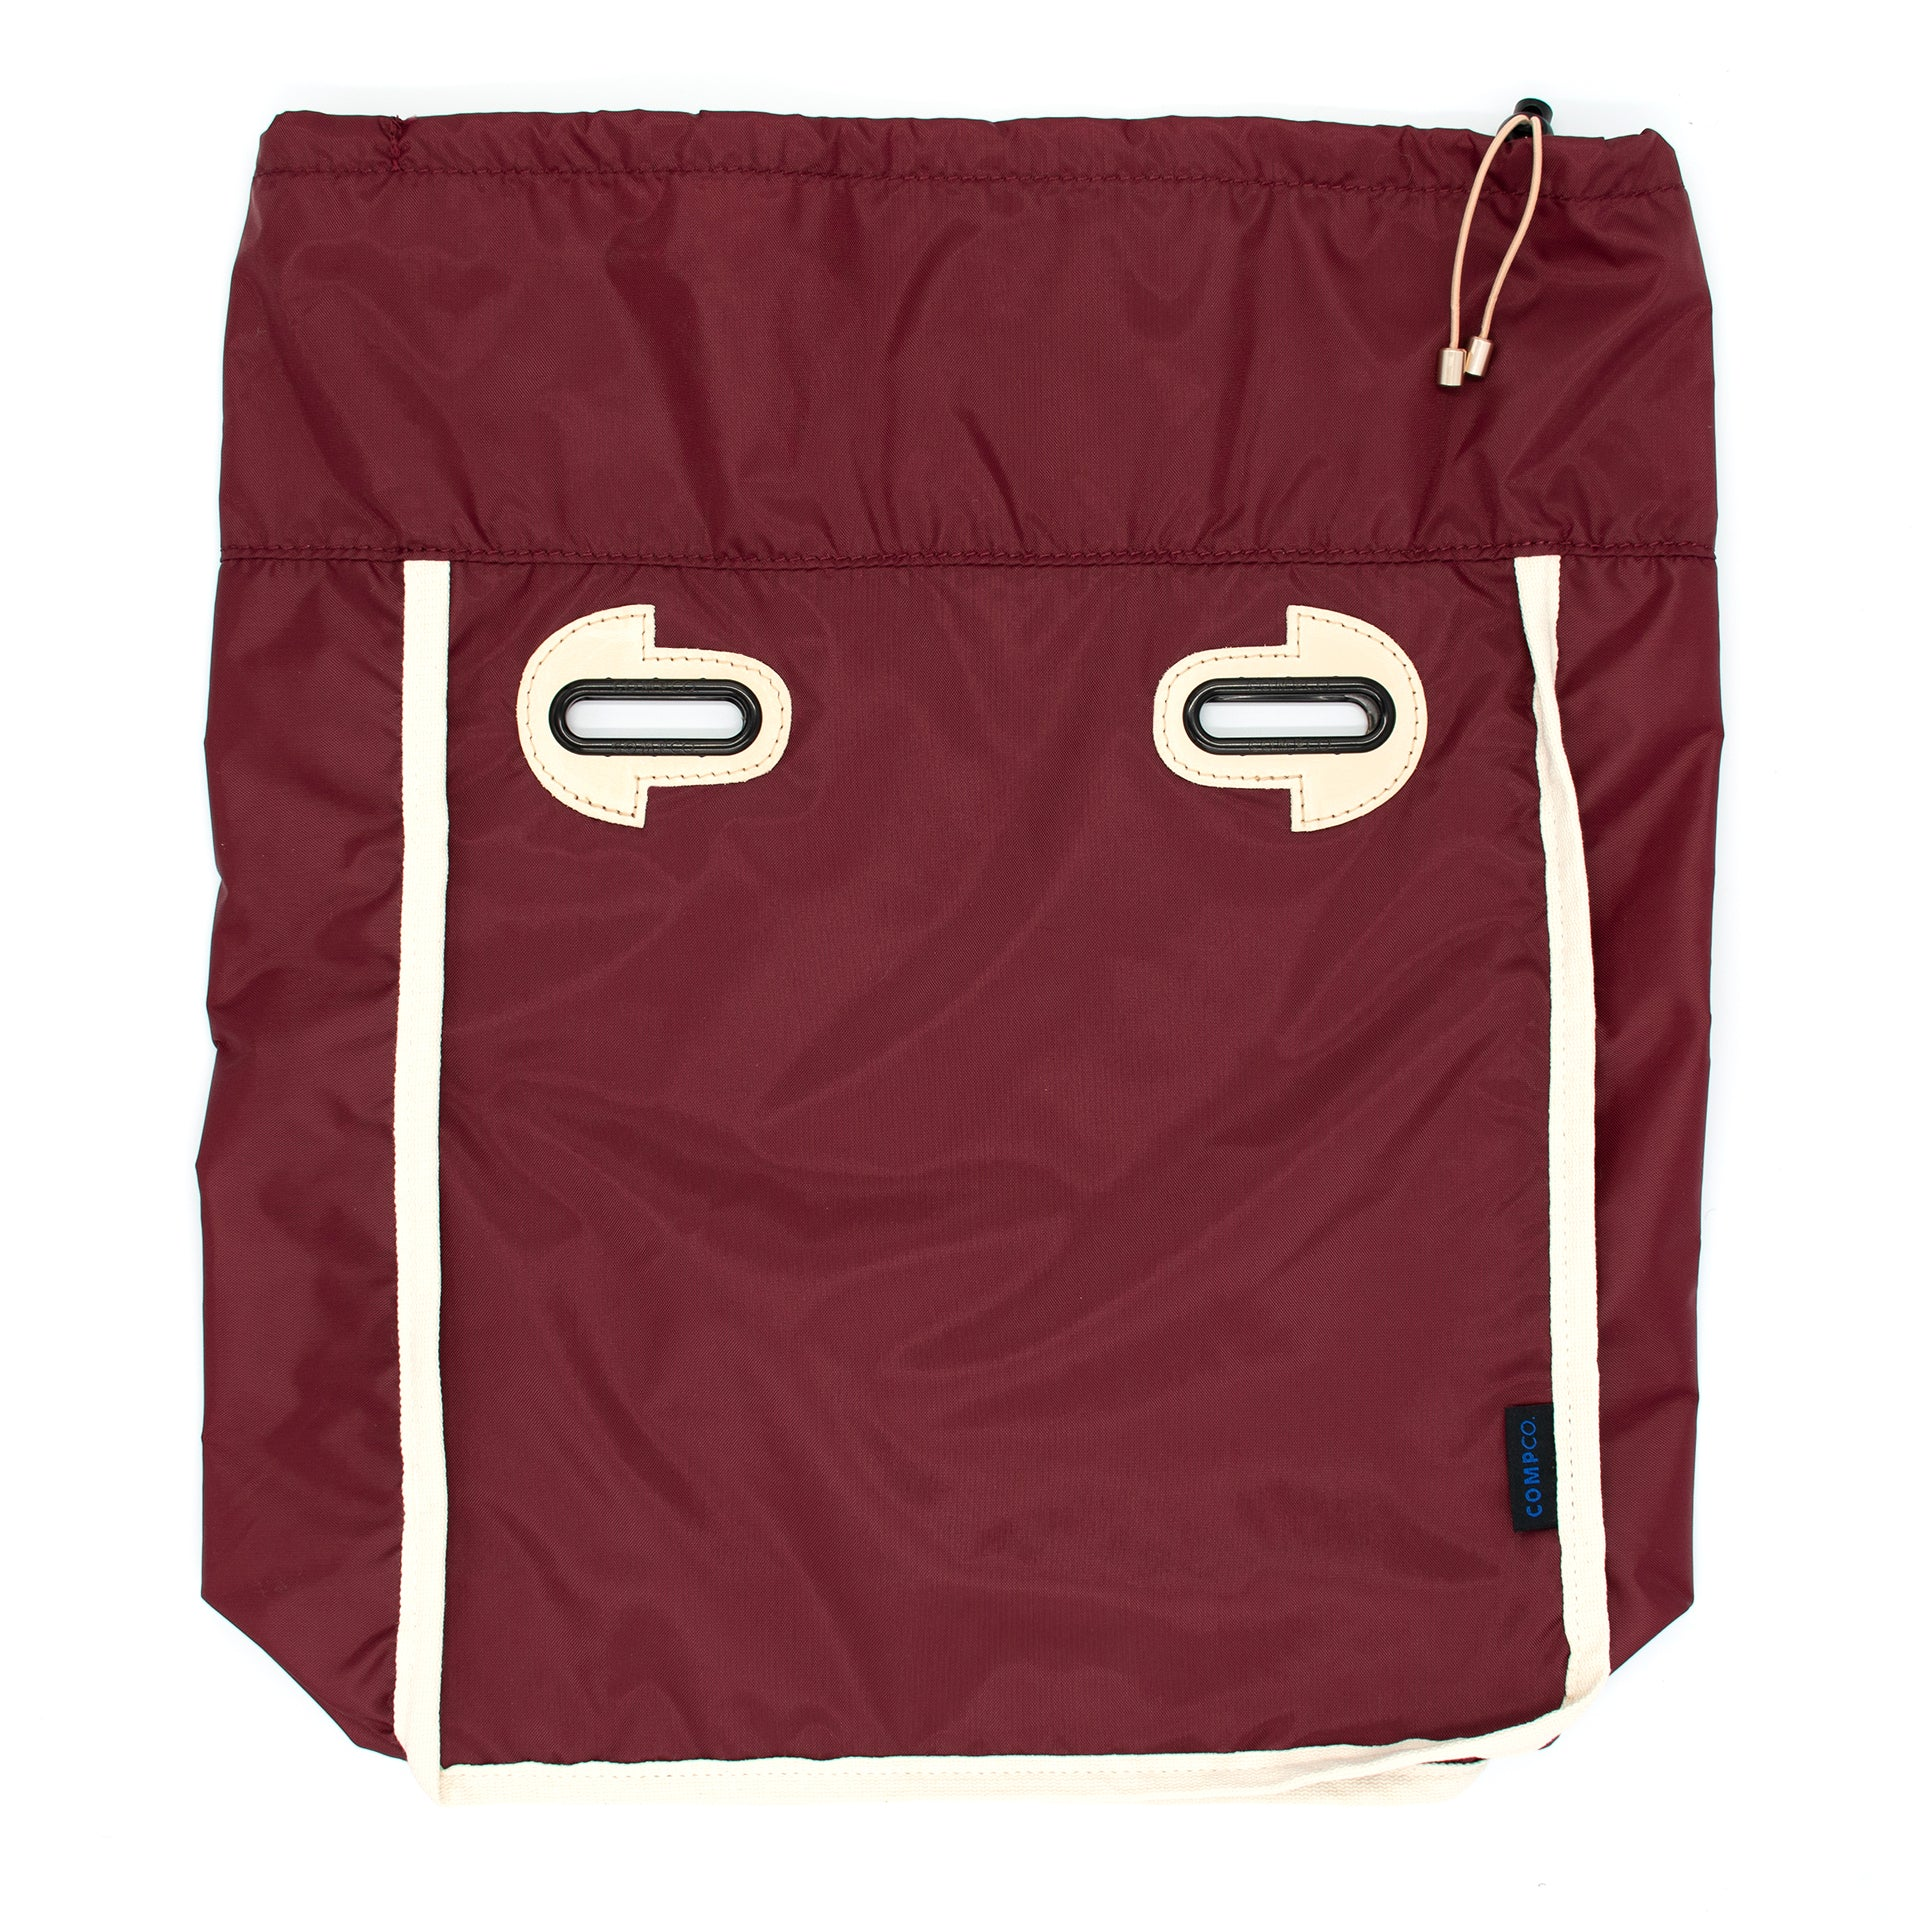 Sangria Red Tote Cover